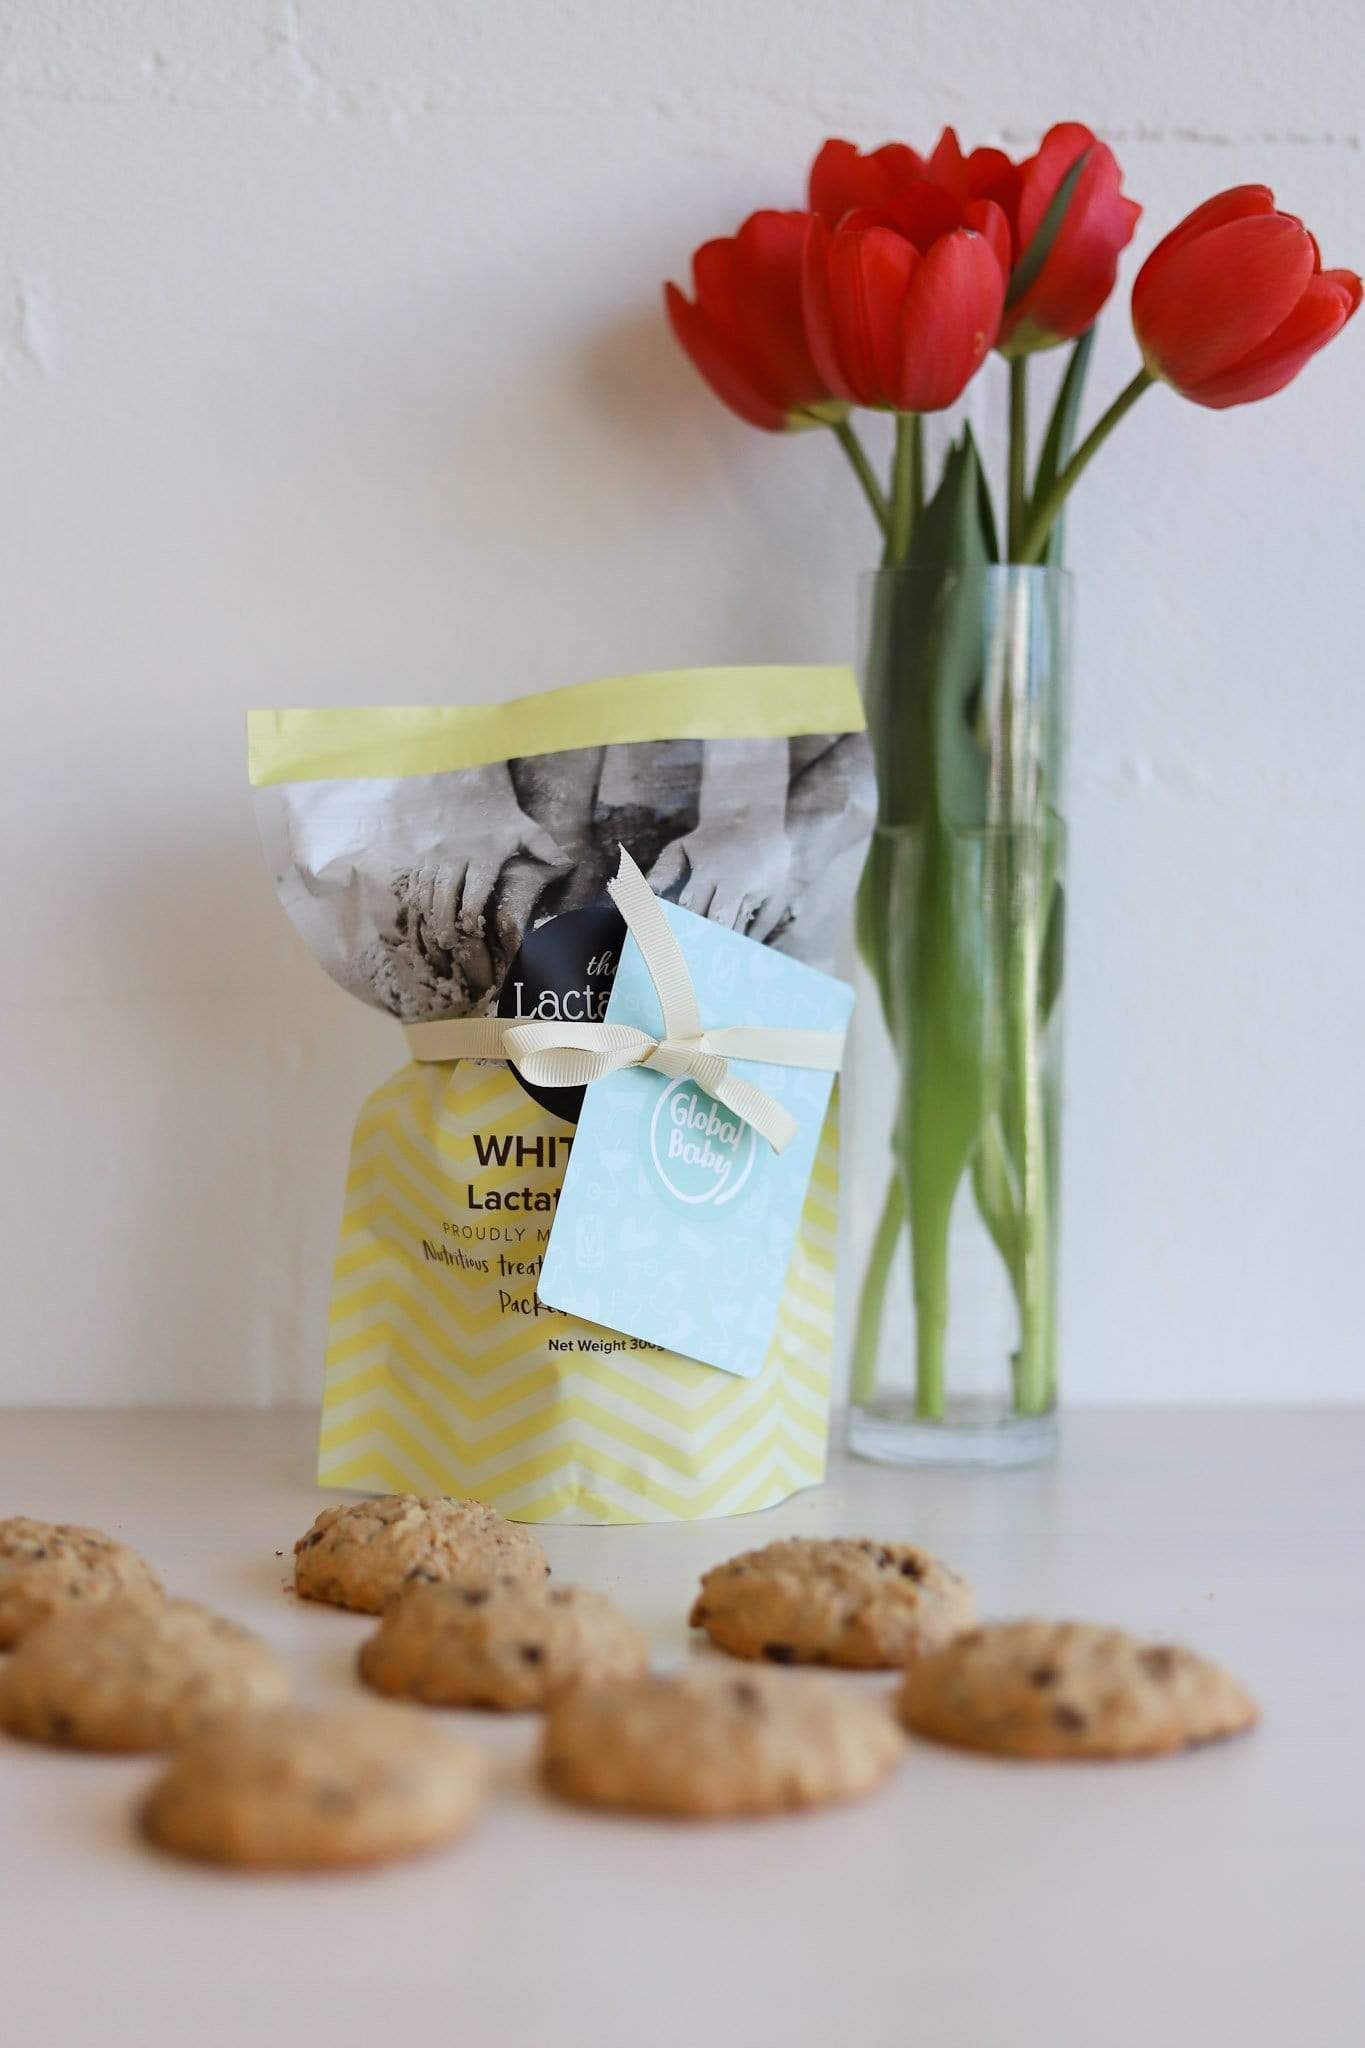 The Lactation Station Lactation Cookies - White Chocolate